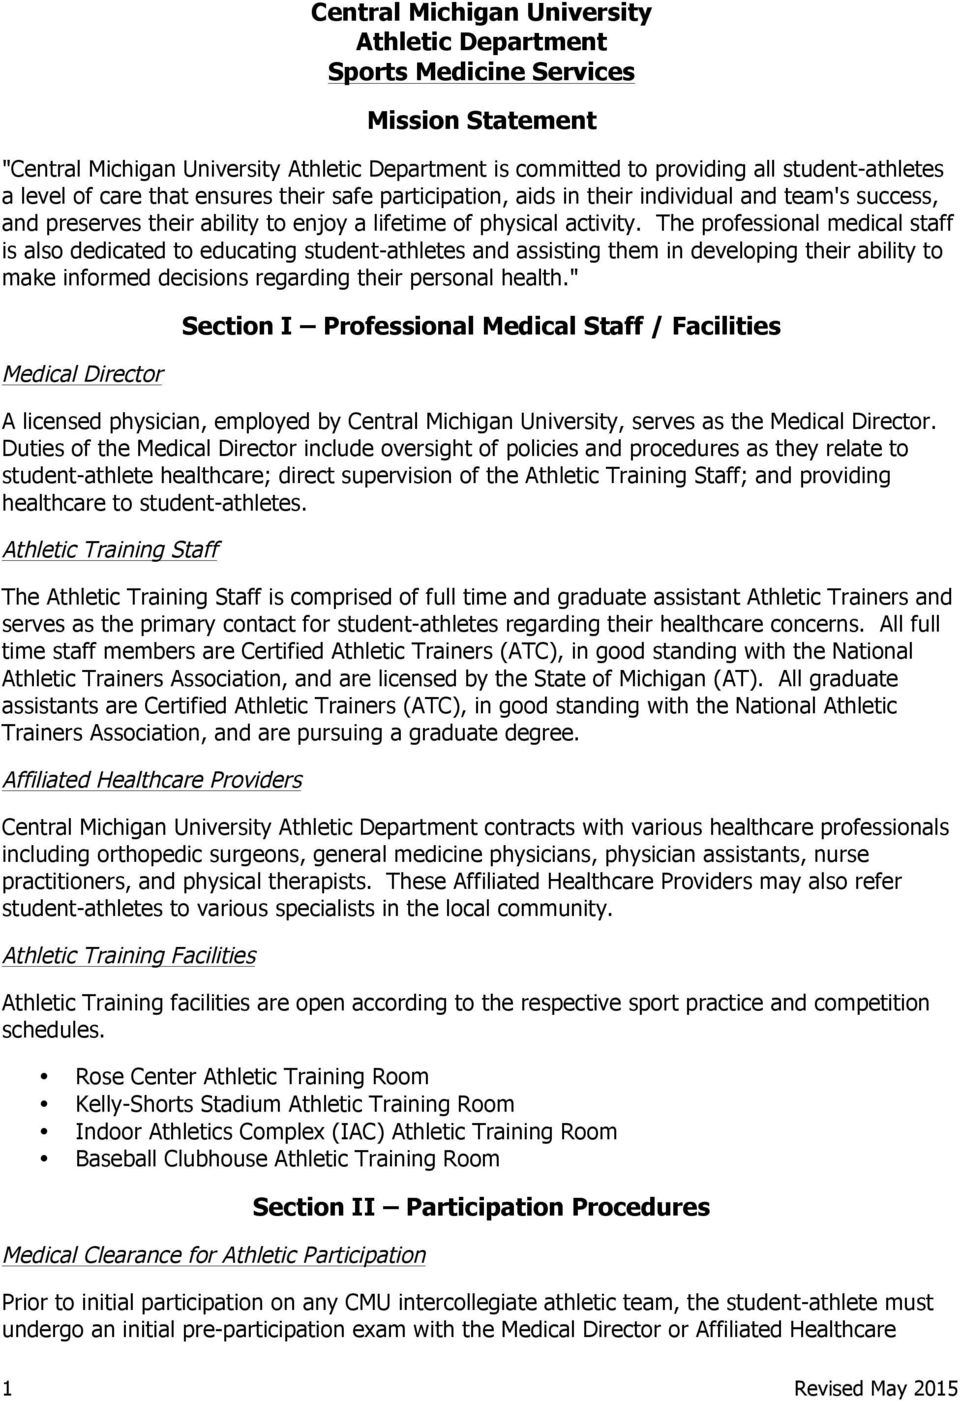 The professional medical staff is also dedicated to educating student-athletes and assisting them in developing their ability to make informed decisions regarding their personal health.